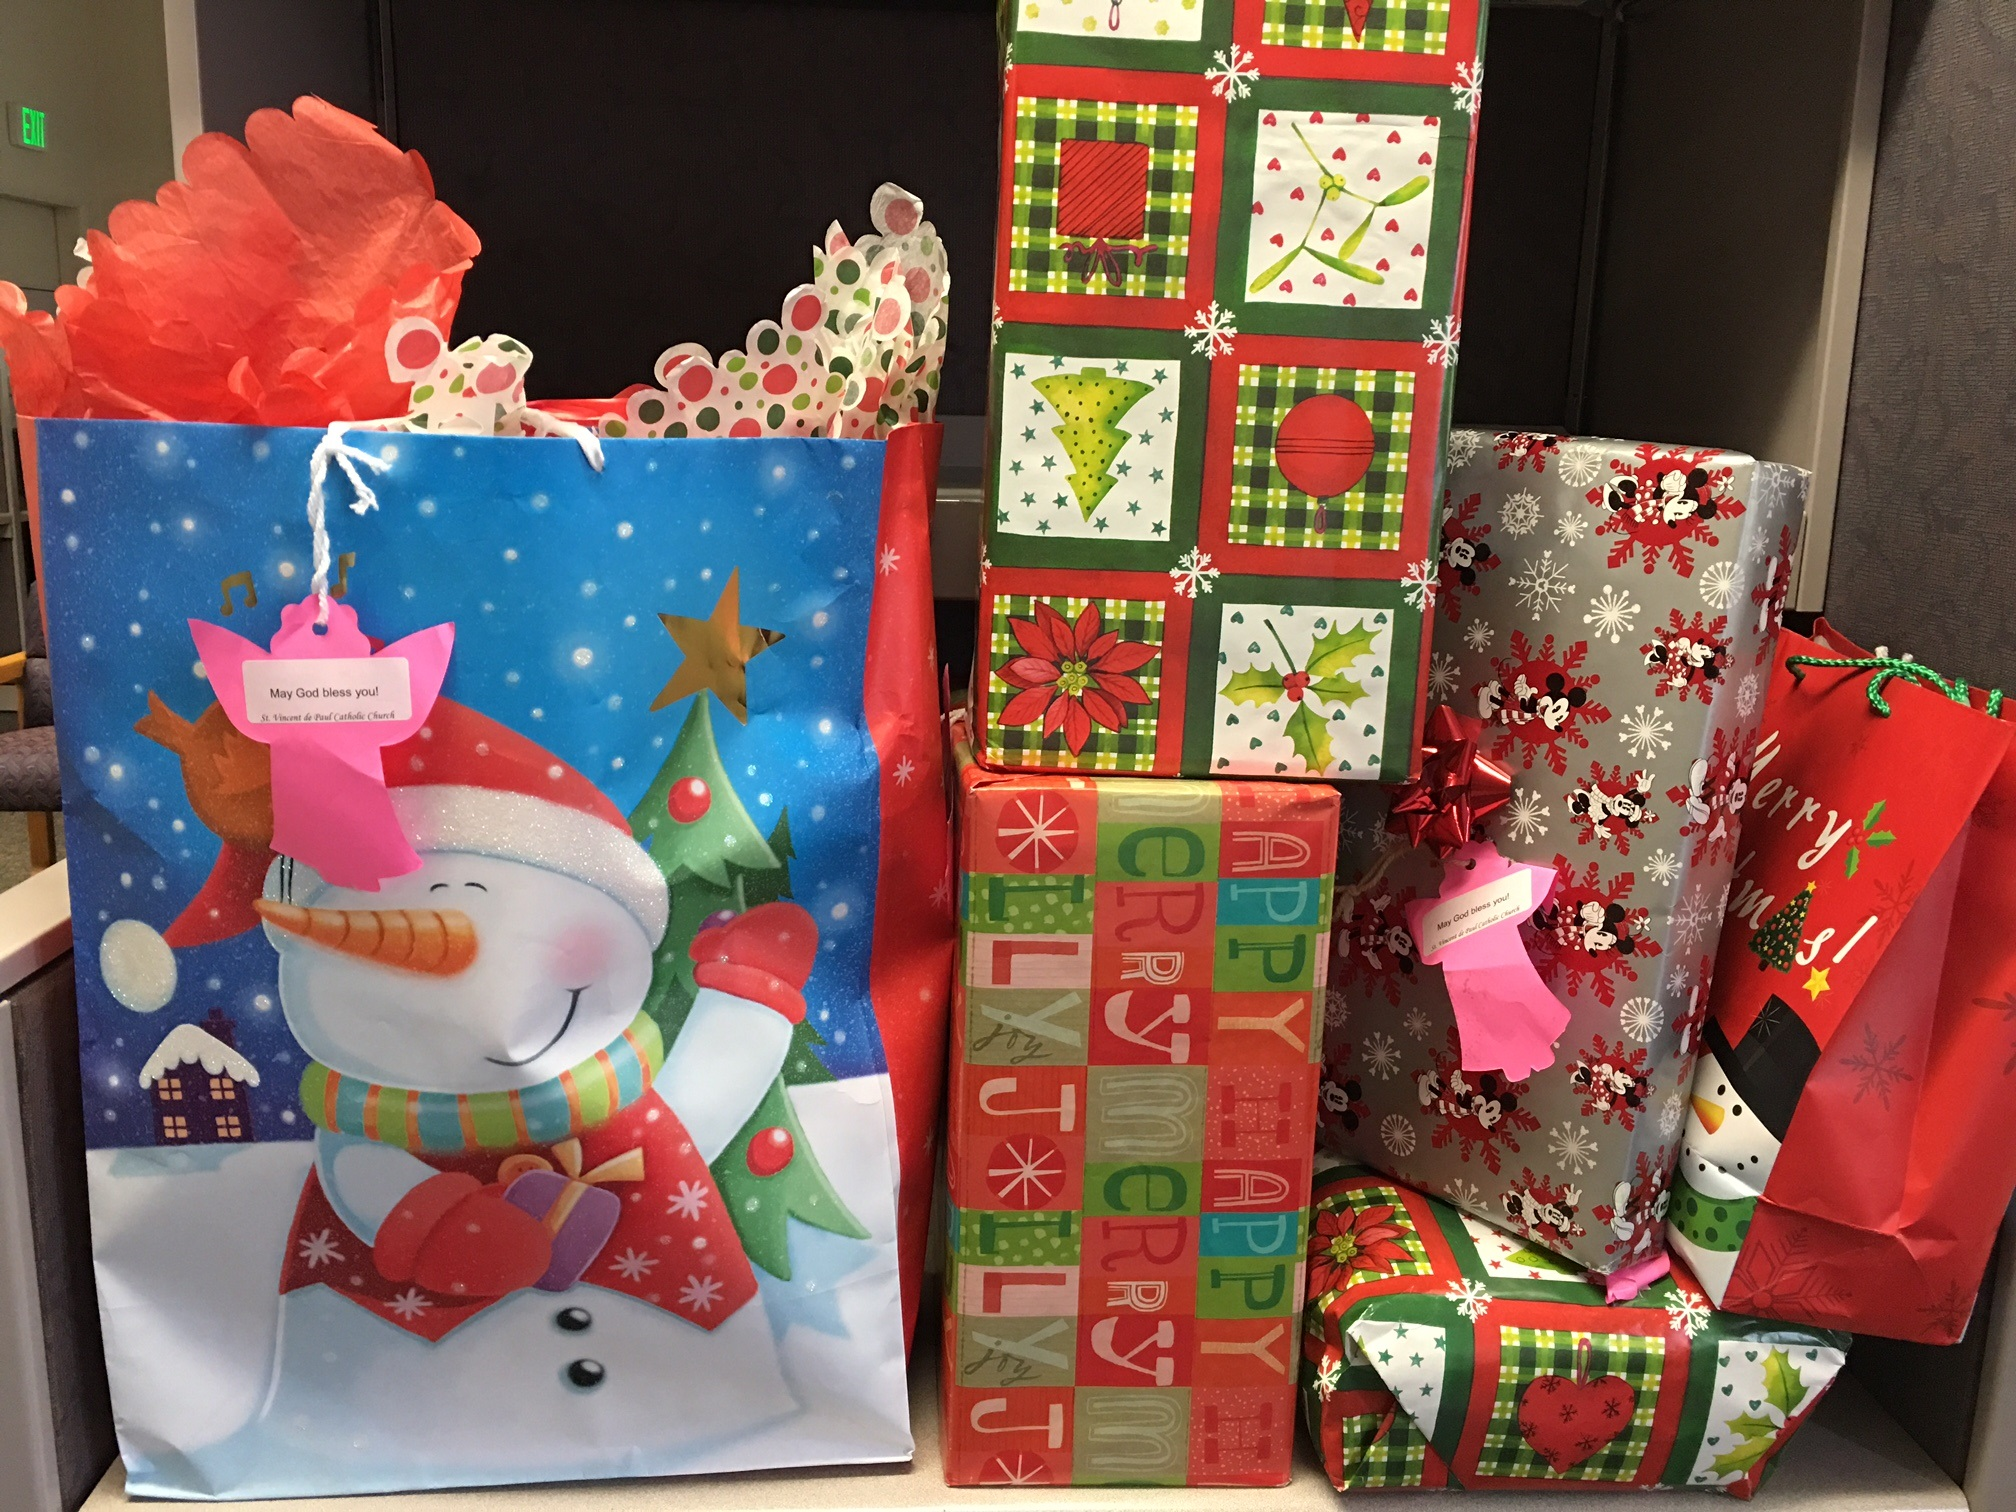 Our Christmas 2016 Adopt -A-Family was another big success!